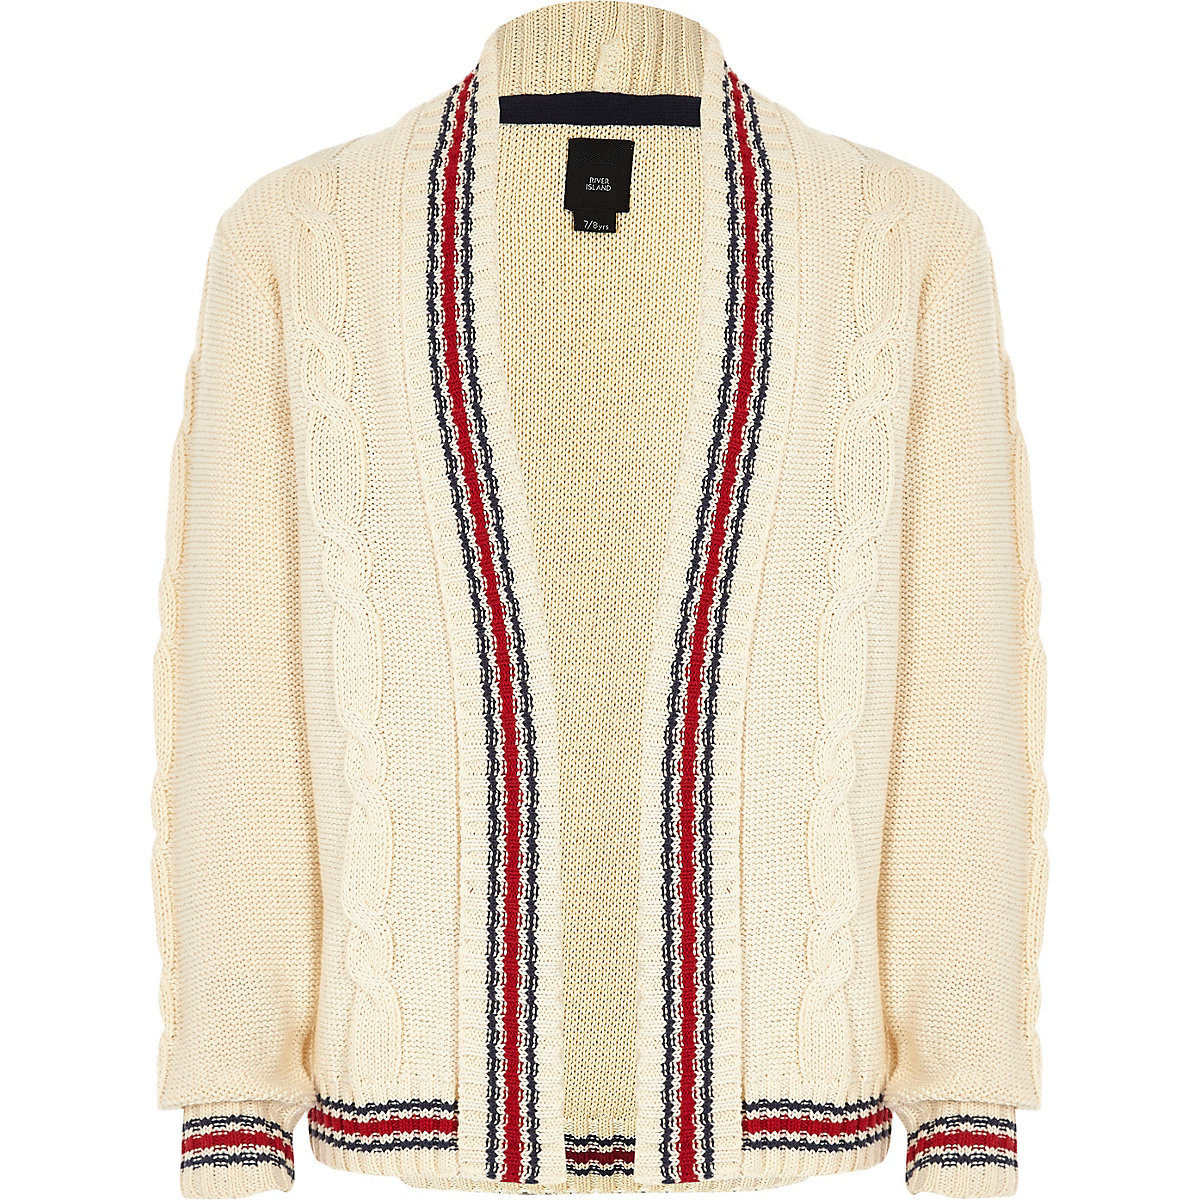 Boys cream cable contrast striped cardigan